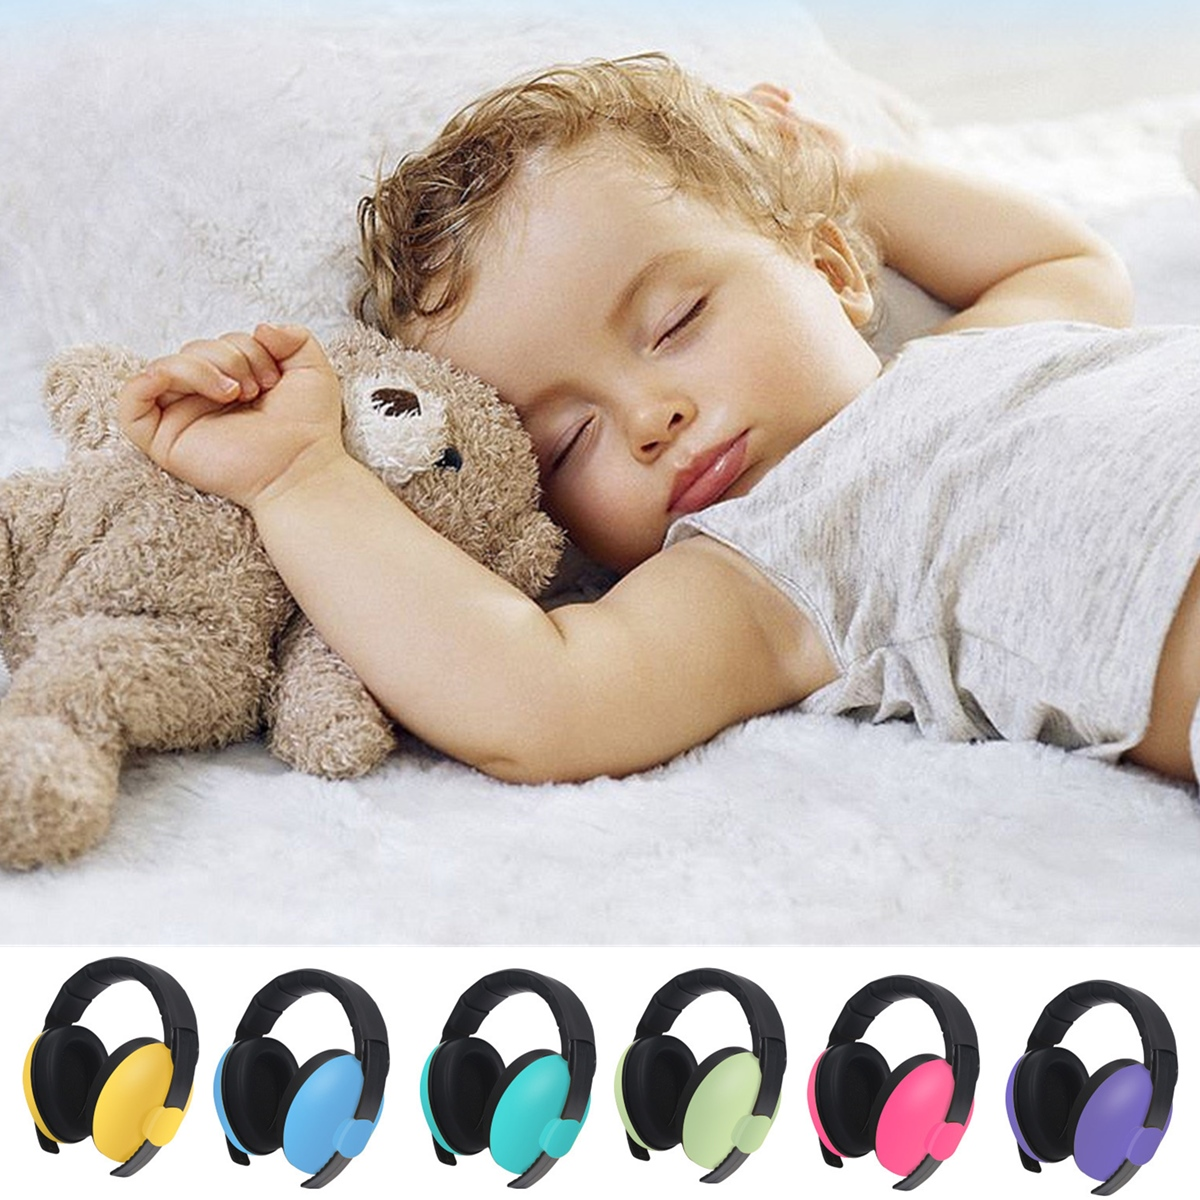 Noise Reduction Earmuffs Headphone Baby Child Boys Girls Ear Defenders Protection Headphone Headset